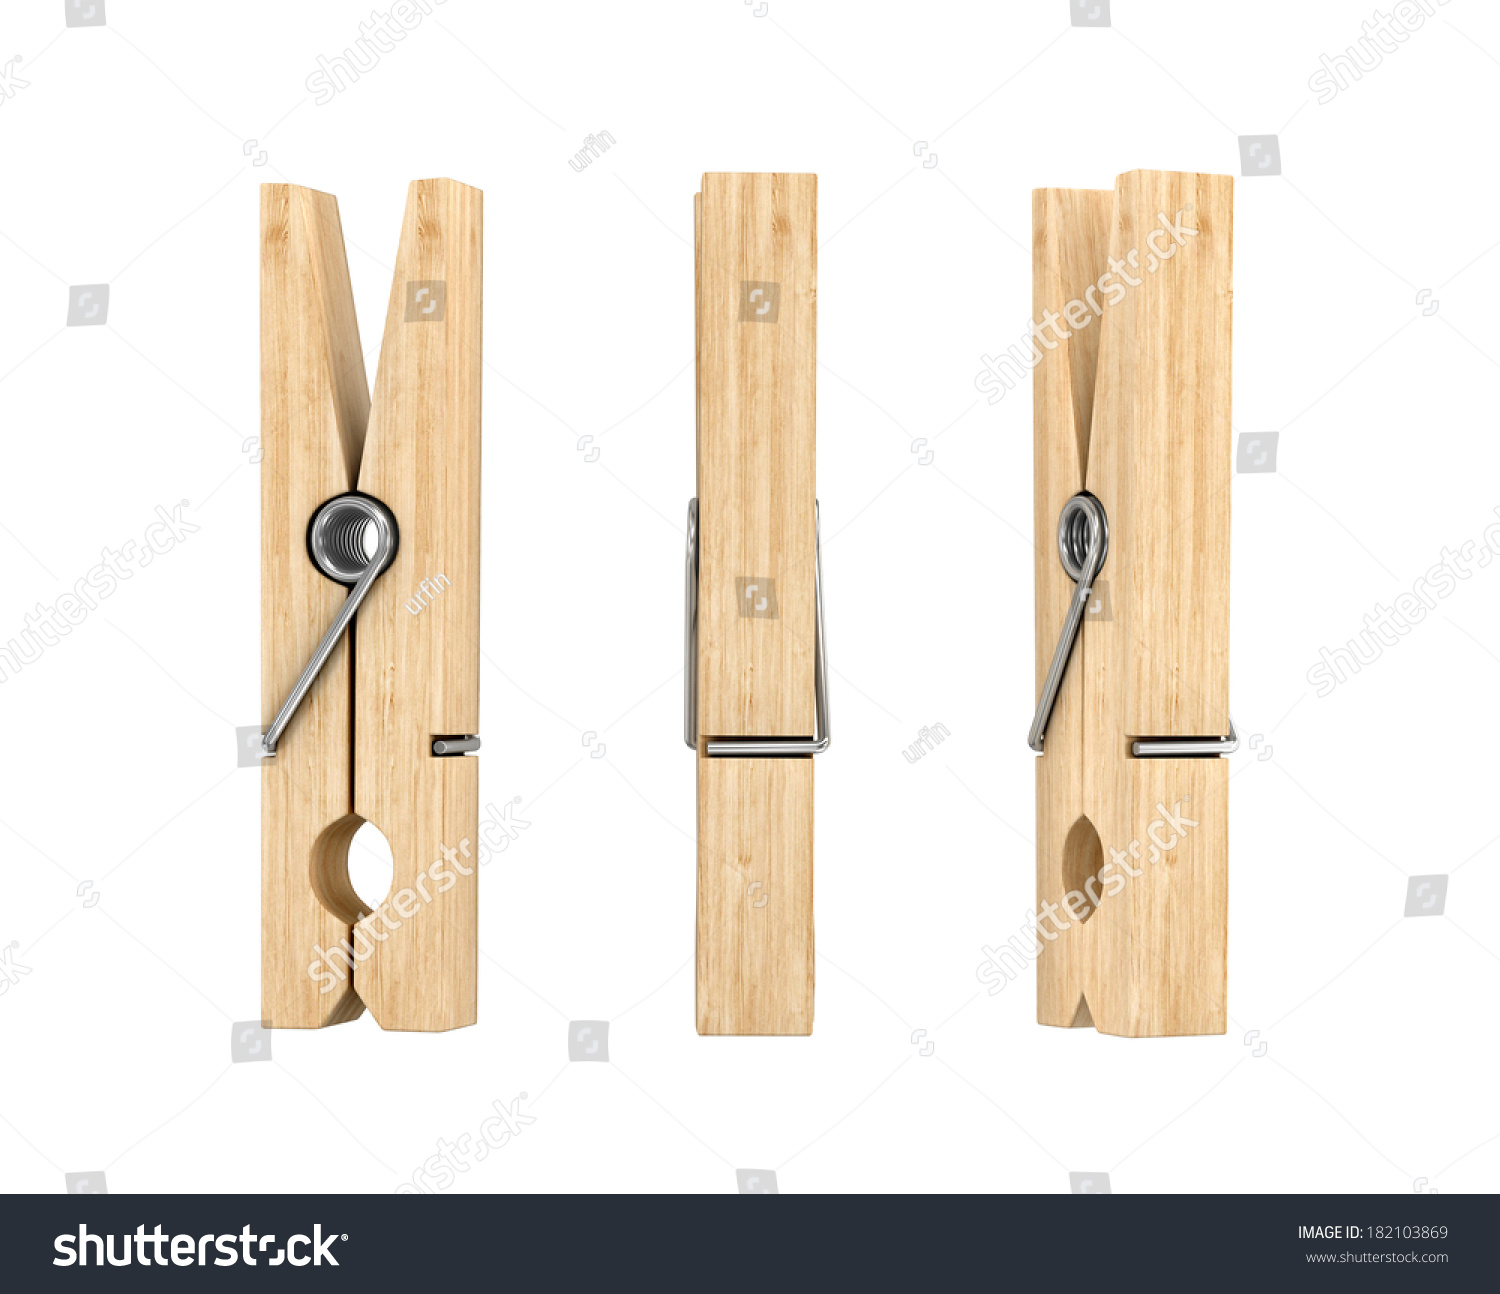 wooden cloth pegs isolated on white stock illustration 182103869 shutterstock. Black Bedroom Furniture Sets. Home Design Ideas